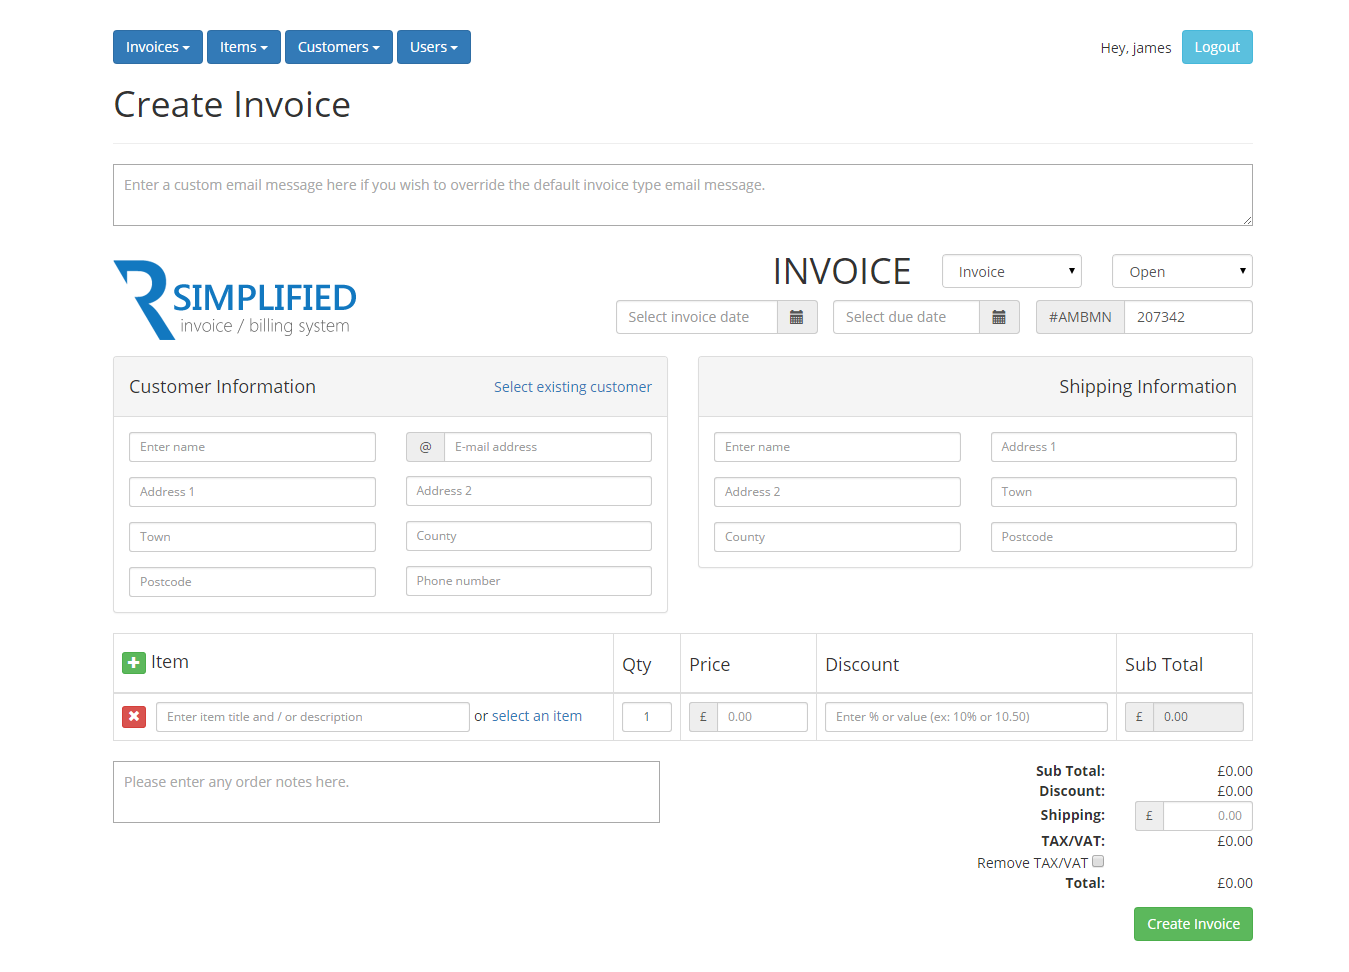 Soulfulpowerus  Gorgeous Simplified Php Invoice  Billing System By Rebootdigitaluk  With Goodlooking  Createinvoicepng  With Astounding Best Invoicing Software Also Invoice Date In Addition Paid Invoice And Past Due Invoice Letter As Well As Outstanding Invoices Additionally What Is Dealer Invoice From Codecanyonnet With Soulfulpowerus  Goodlooking Simplified Php Invoice  Billing System By Rebootdigitaluk  With Astounding  Createinvoicepng  And Gorgeous Best Invoicing Software Also Invoice Date In Addition Paid Invoice From Codecanyonnet